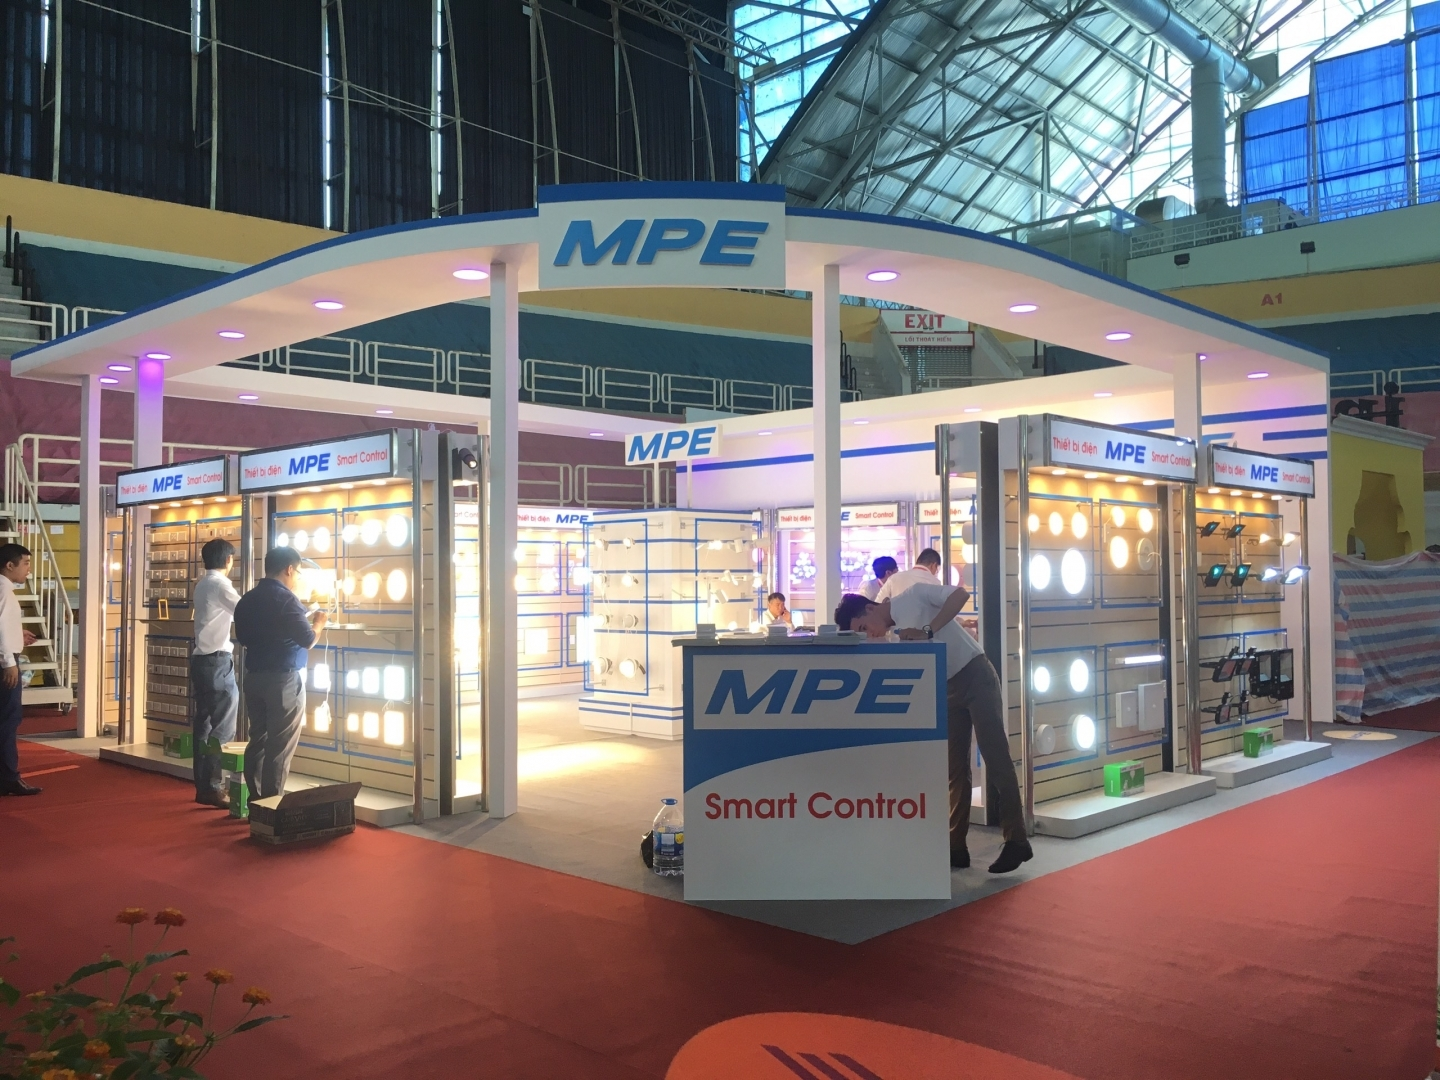 MPE booth - designed and constructed by MT-Production